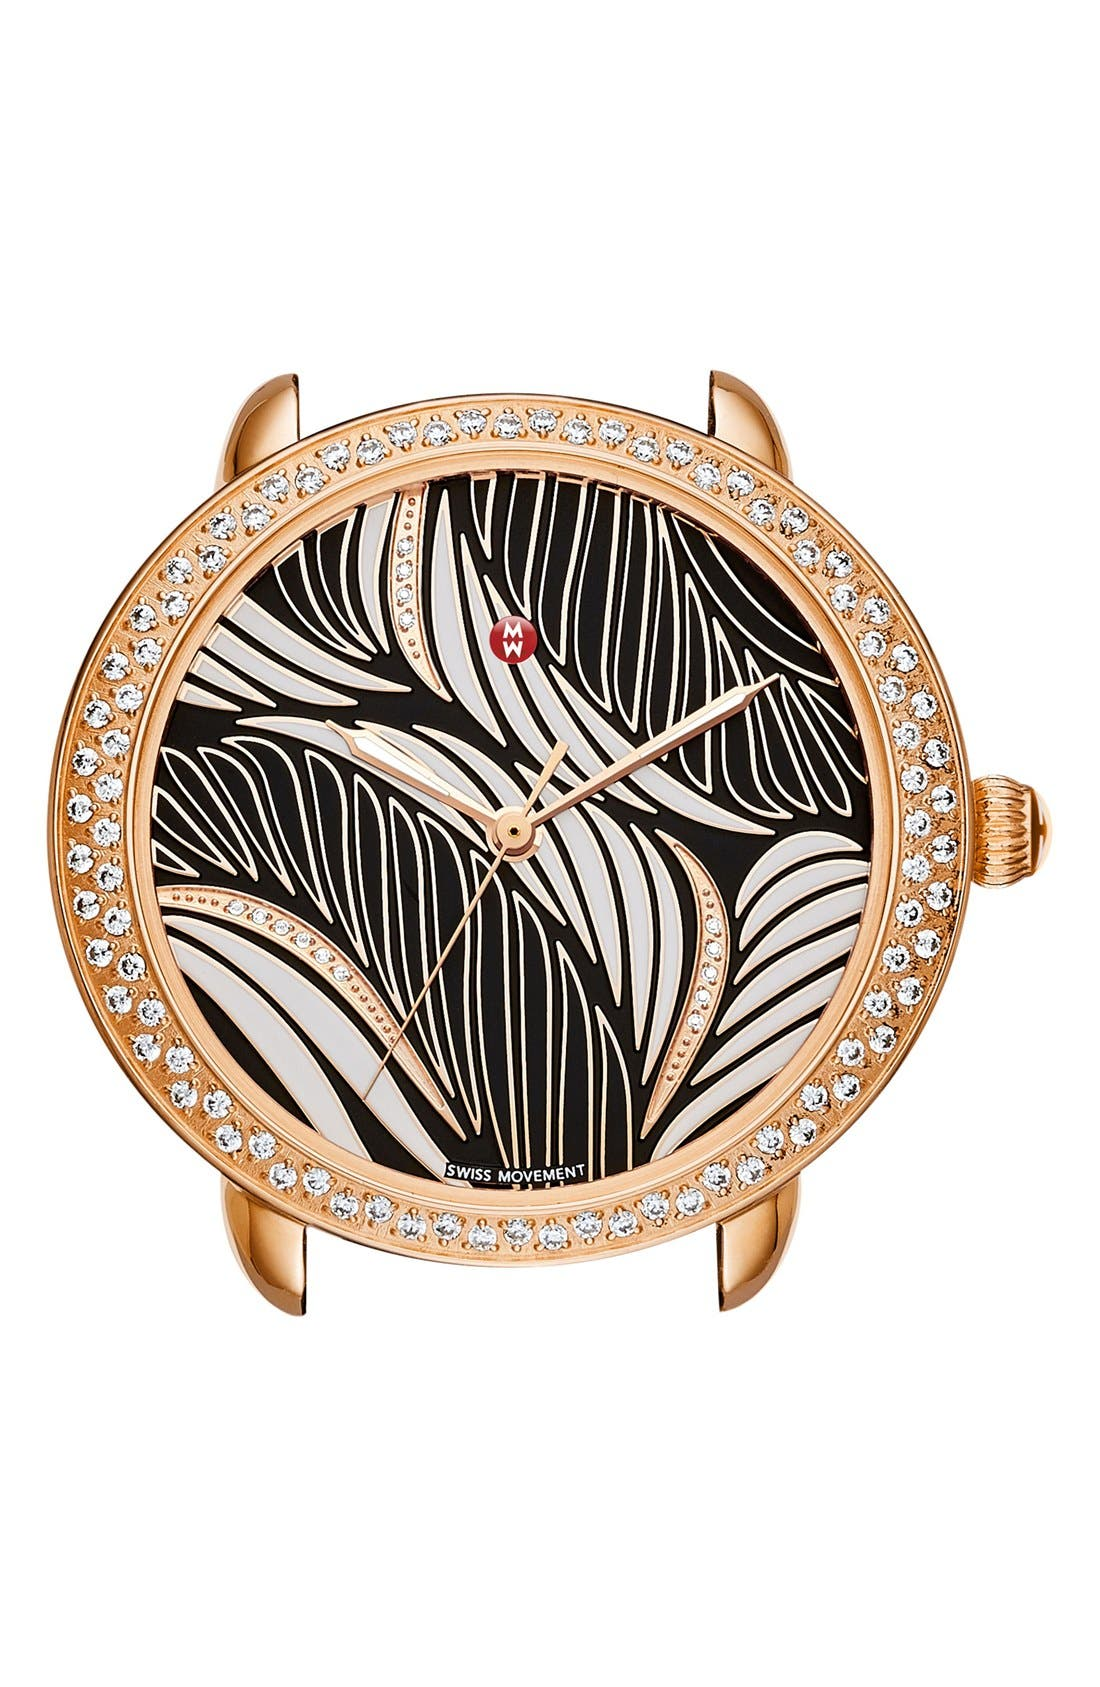 Serein 16 Diamond Watch Case, 34mm x 36mm,                         Main,                         color, Rose Gold/ Black And White